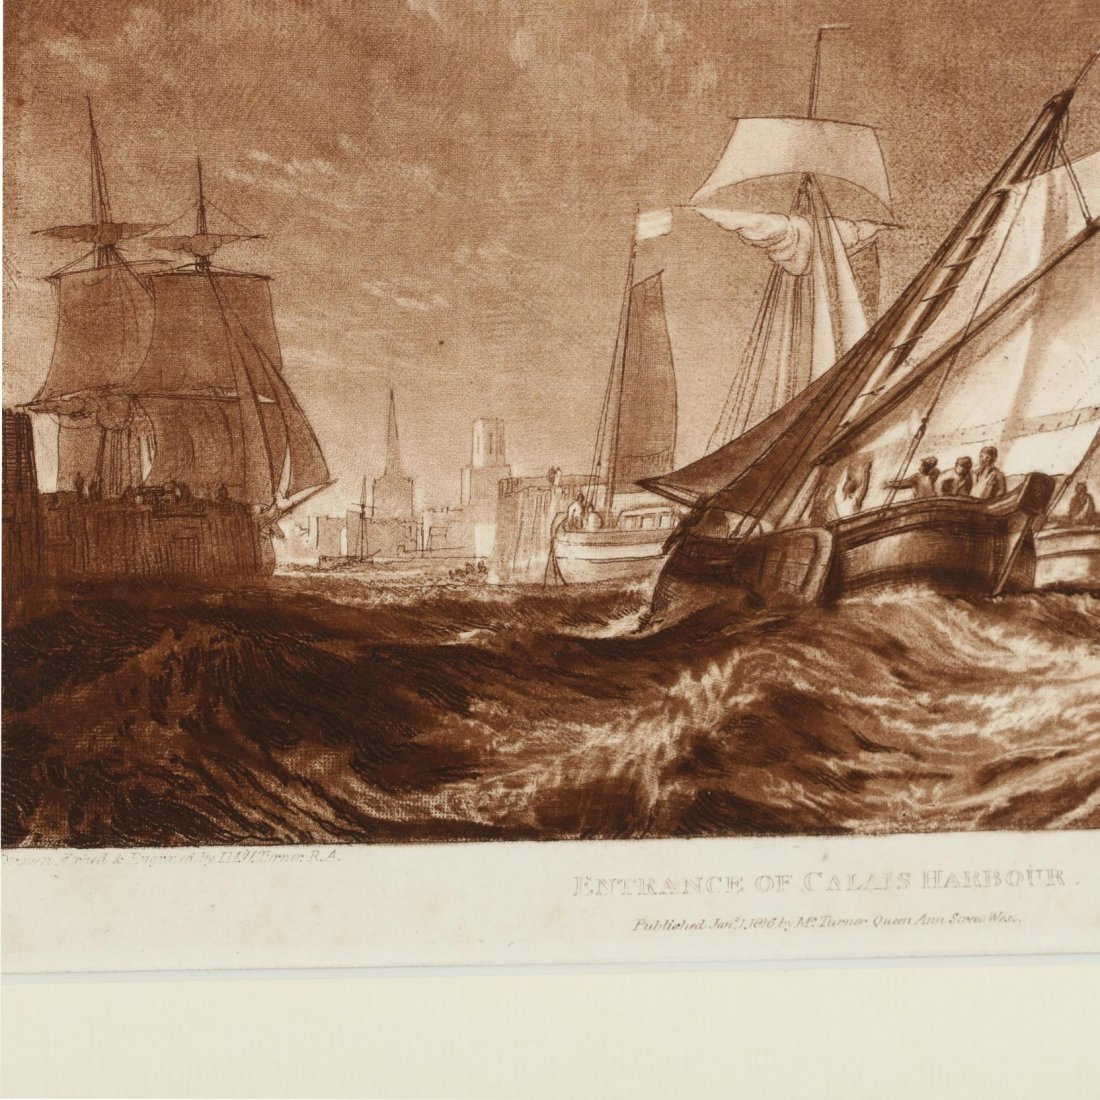 Two Antique Prints Picturing Sailing Vessels - Turner - 3